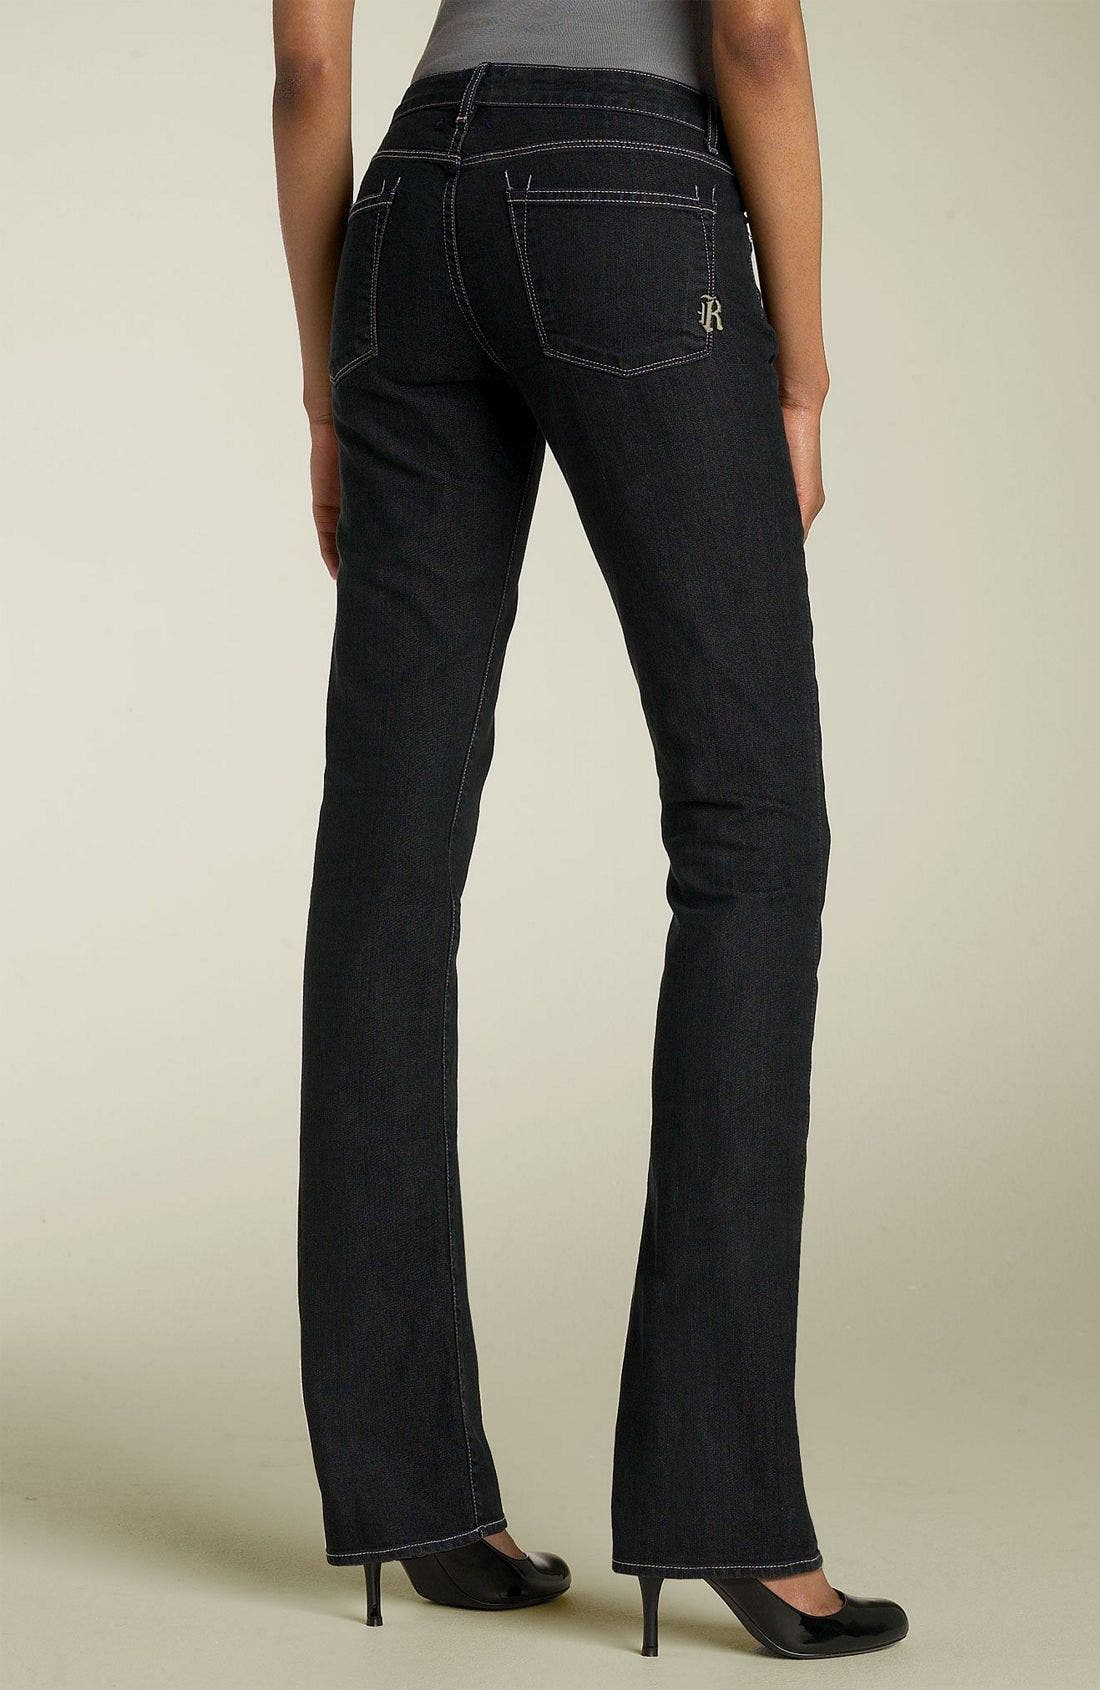 RICH & SKINNY,                             'Sleek' Straight Leg Stretch Jeans,                             Main thumbnail 1, color,                             001